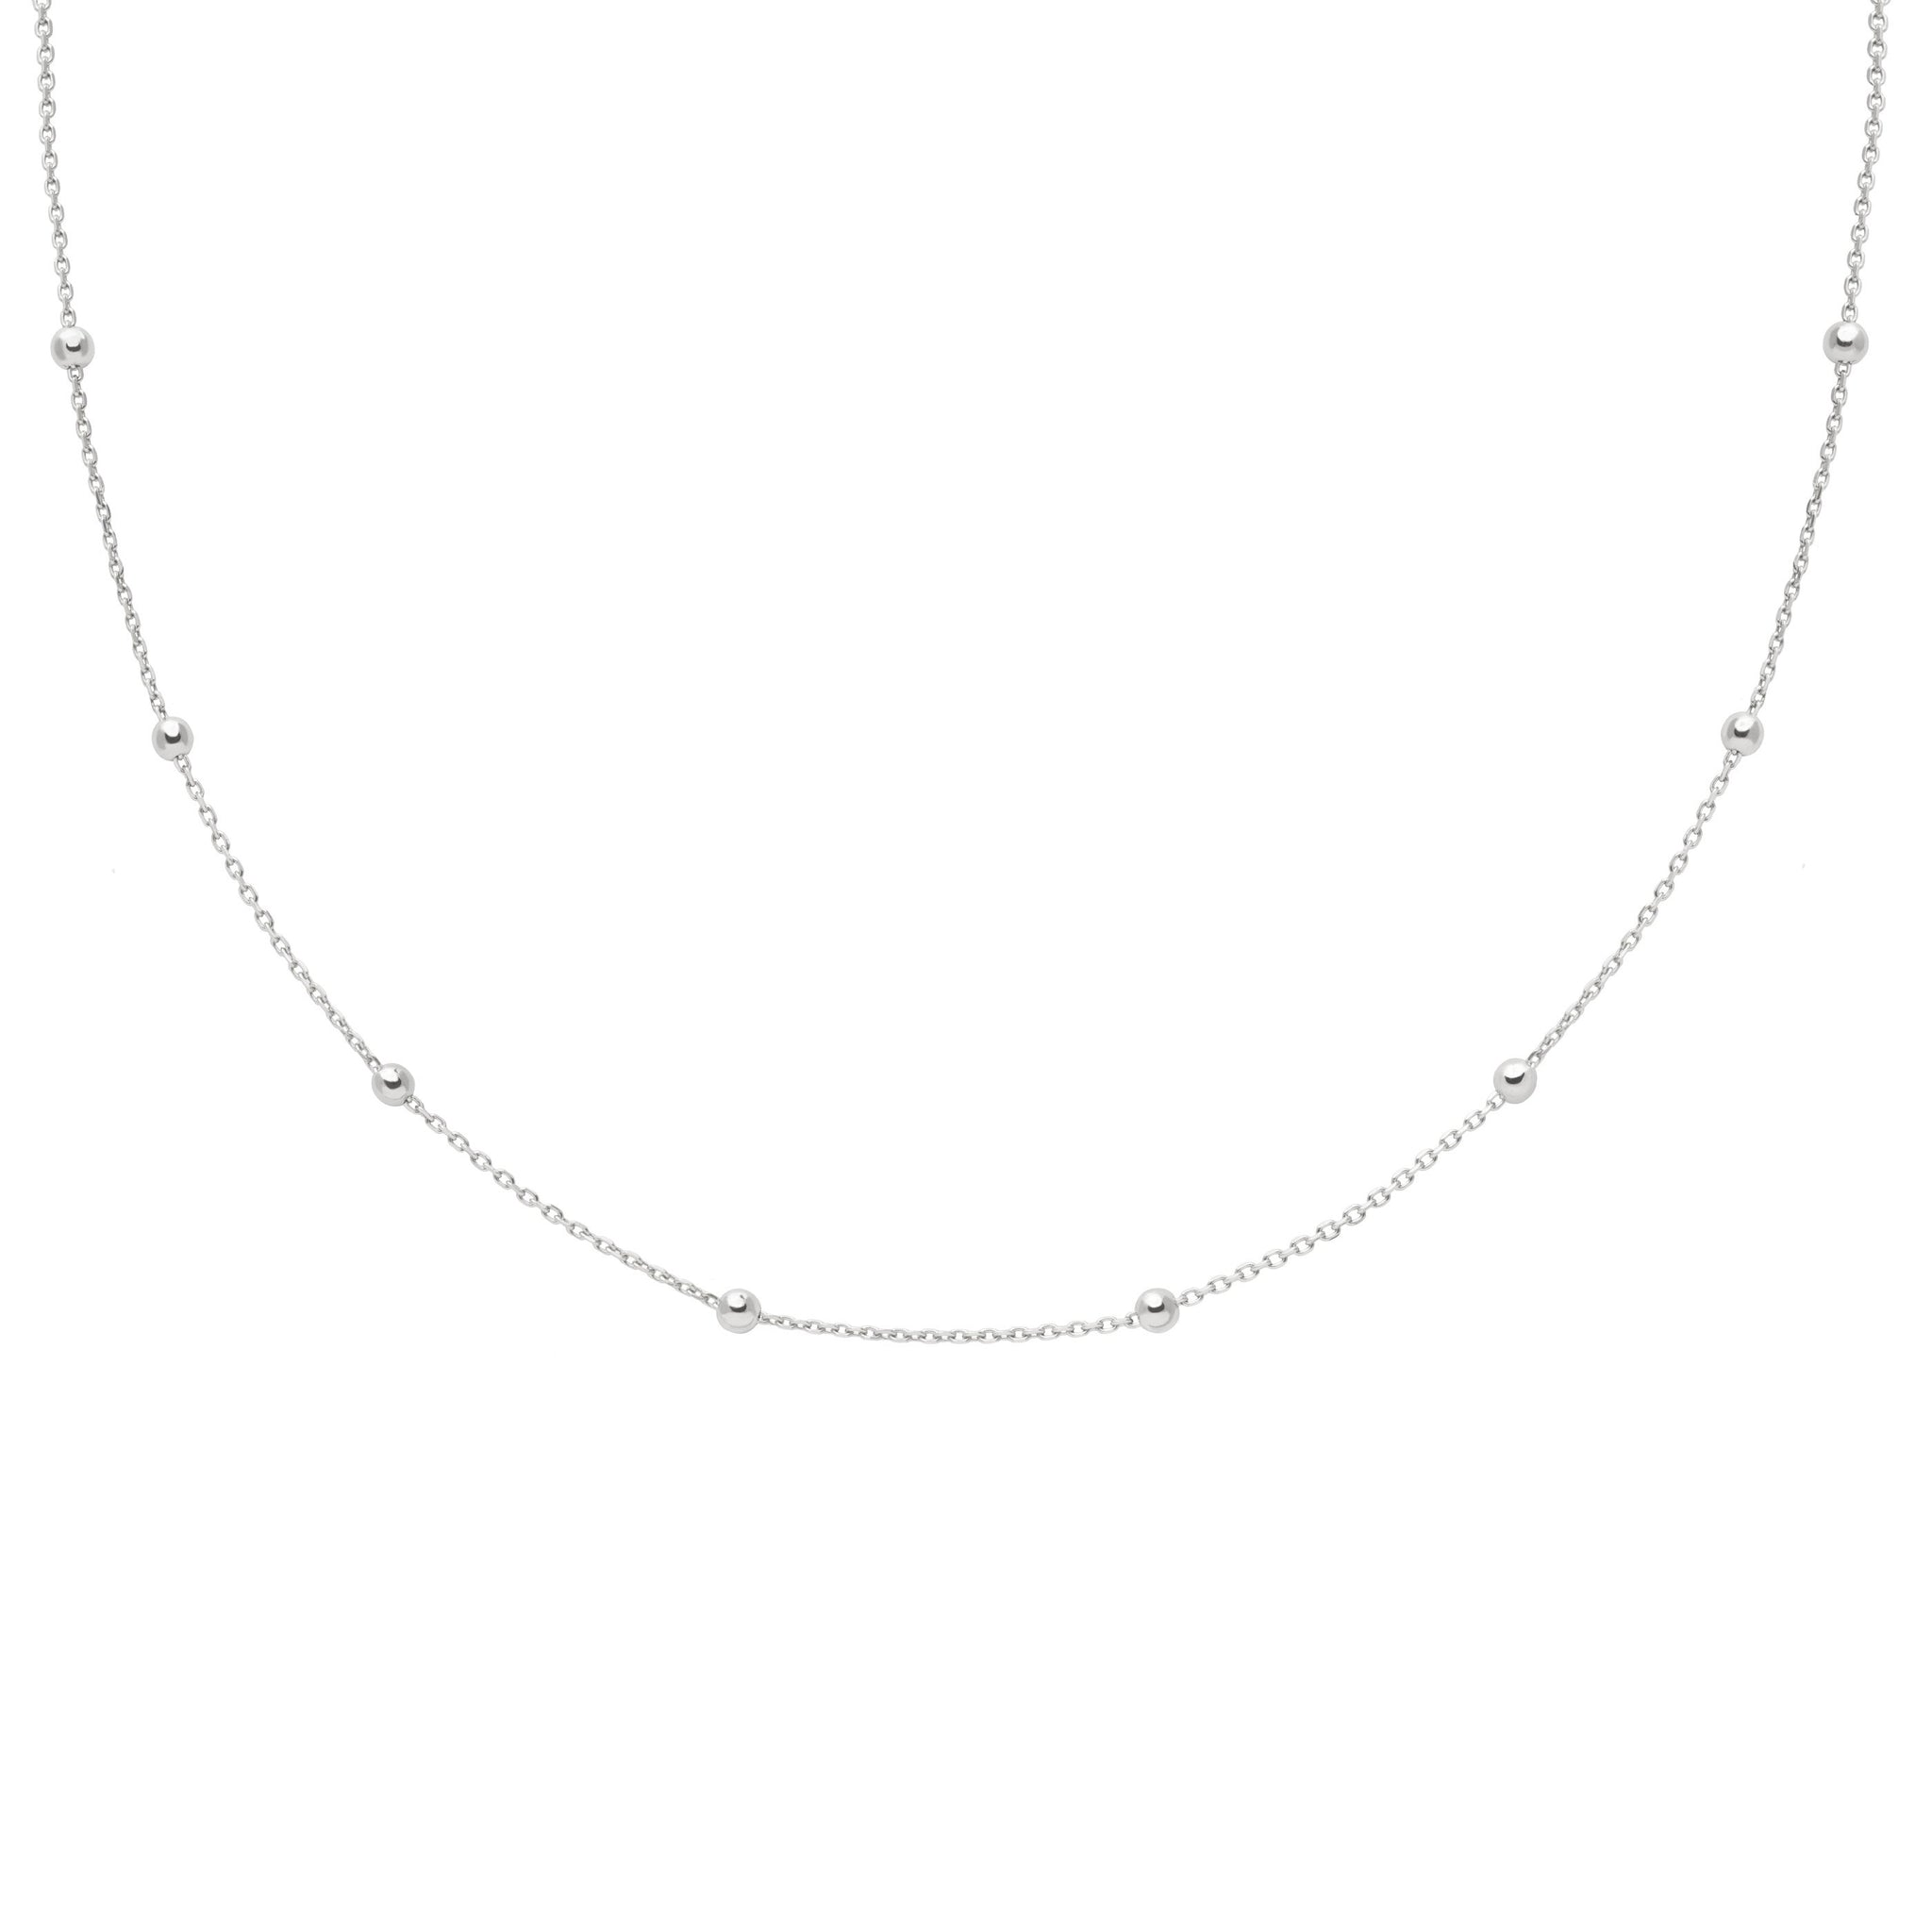 Basic Large Beaded Choker in Silver